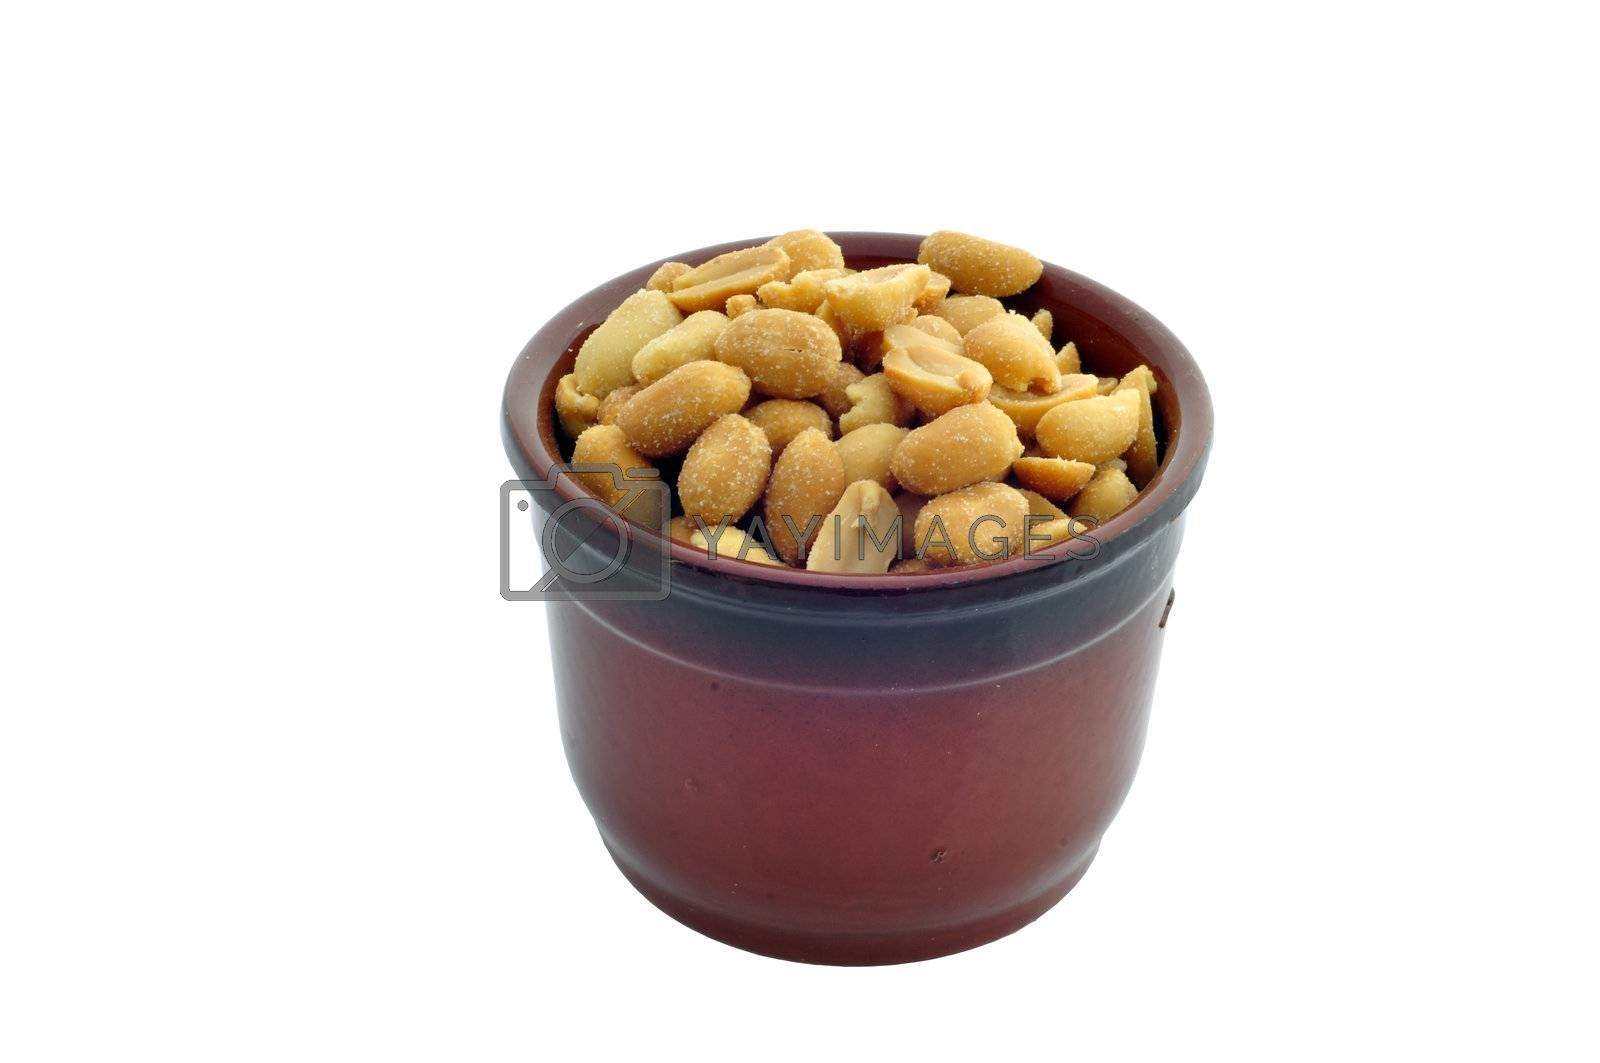 a container with peanuts on a white background